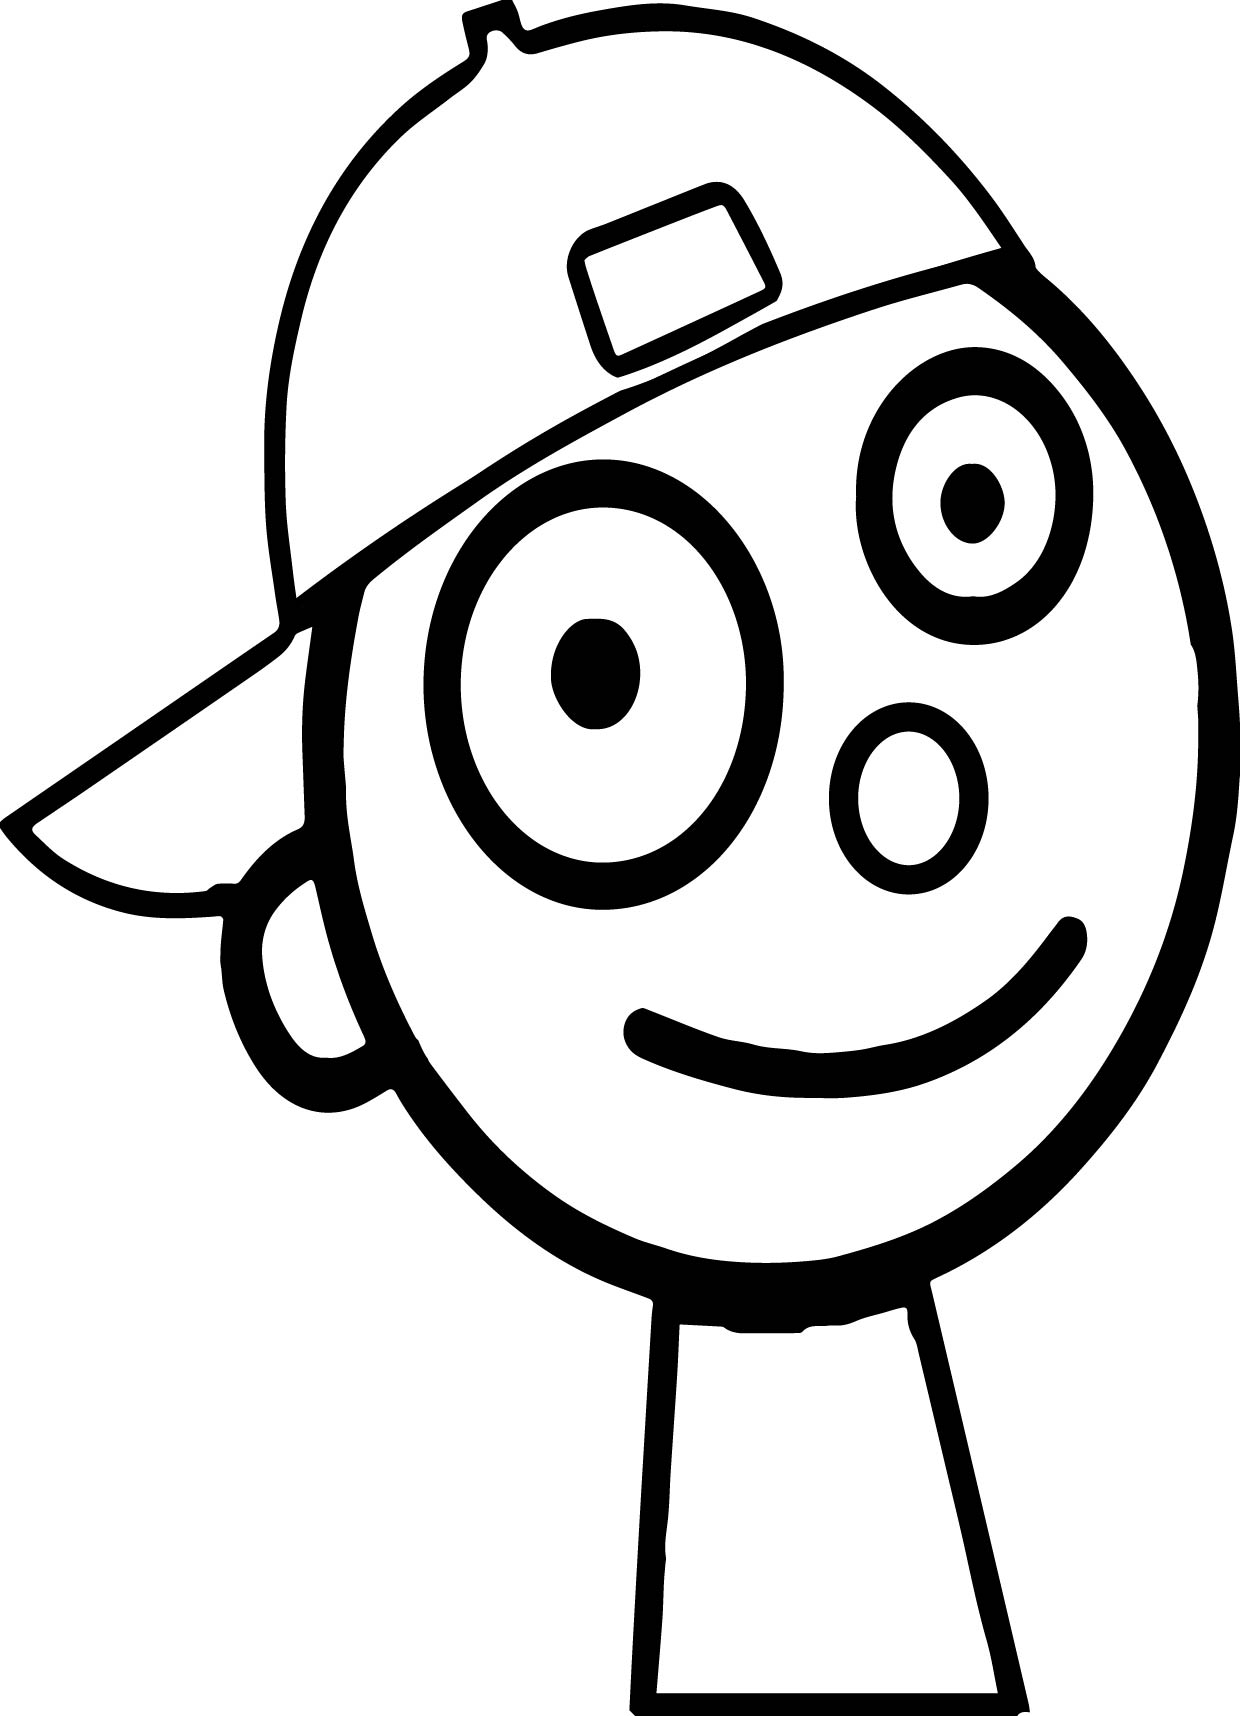 Pbs Kids Colouring Pages Sketch Coloring Page